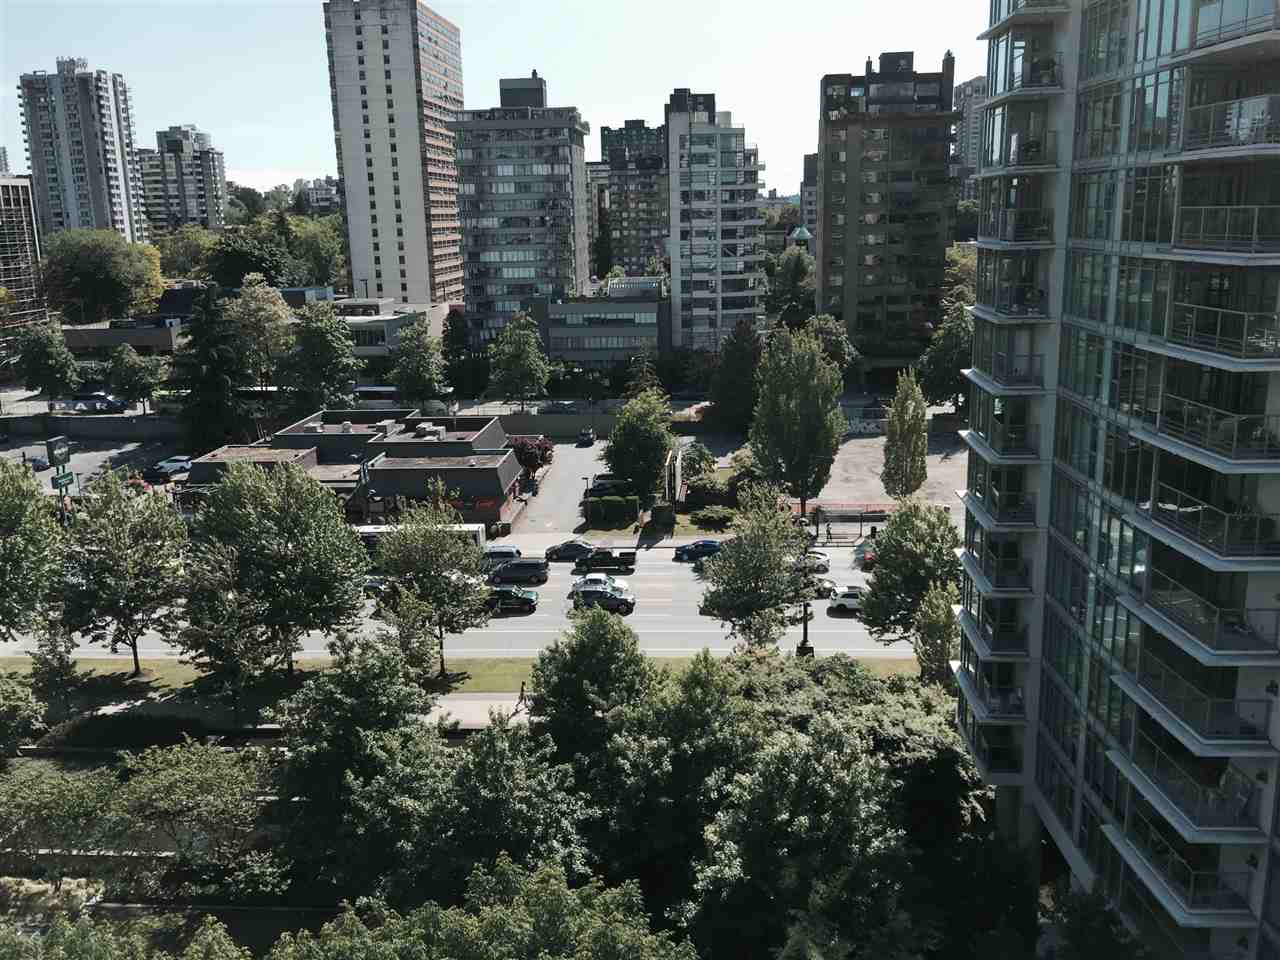 Photo 9: 1201 1650 BAYSHORE Drive in Vancouver: Coal Harbour Condo for sale (Vancouver West)  : MLS® # R2175467